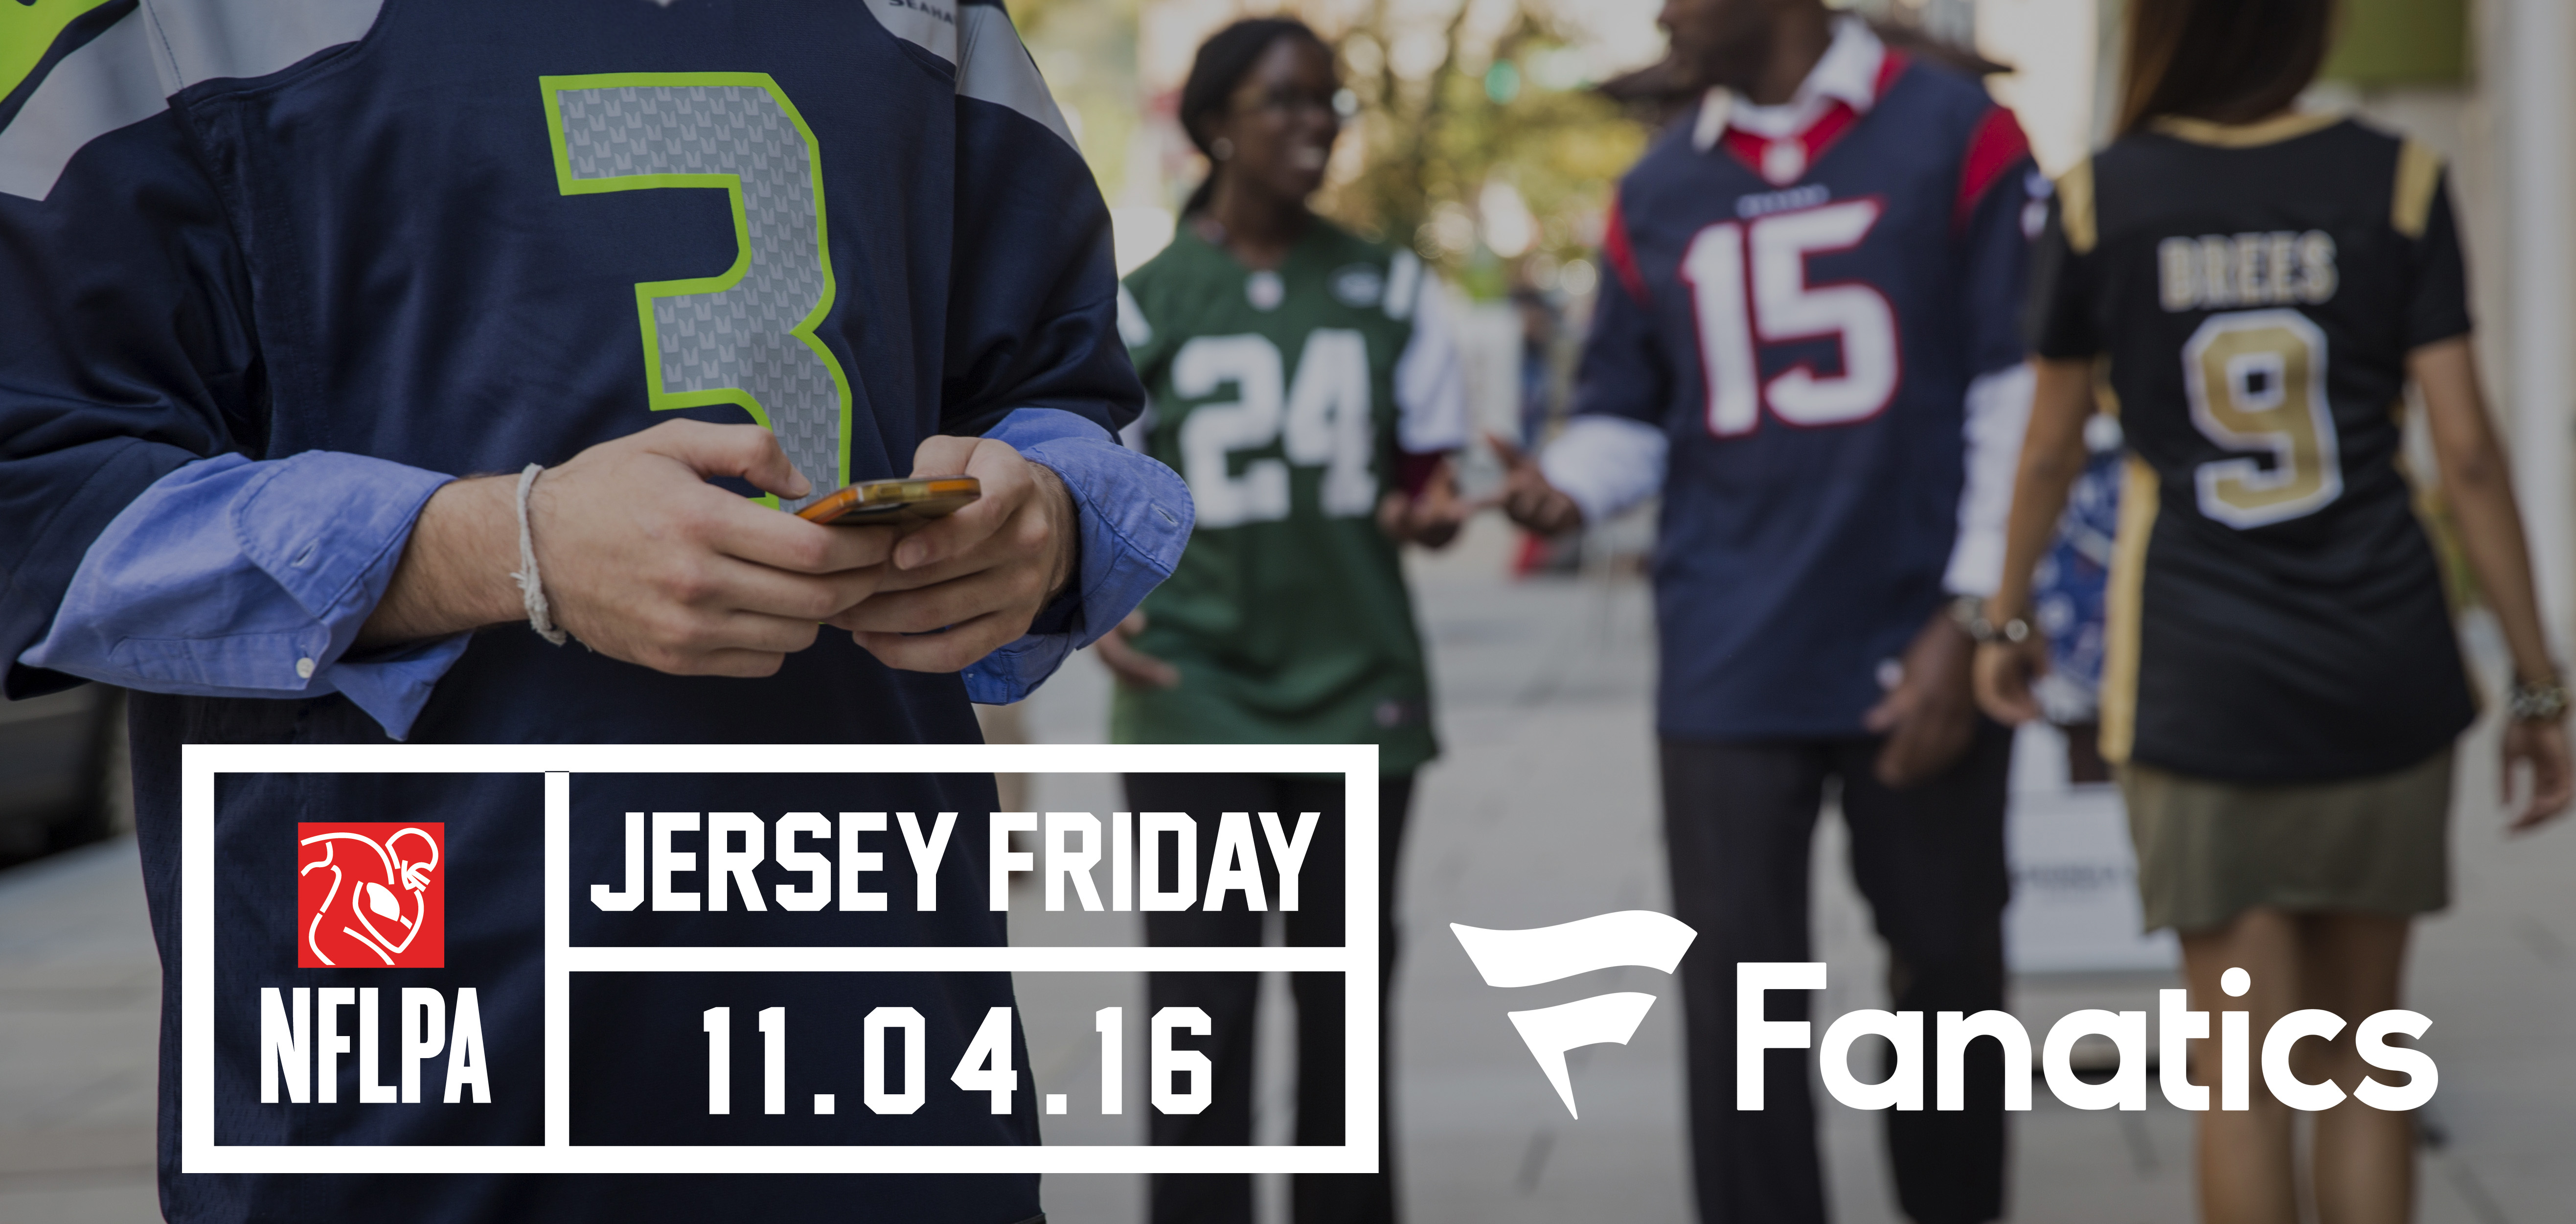 """ec3eae15b NFL Players Association and Fanatics Announce Second Annual """"National Jersey  Friday"""" on Nov. 4"""